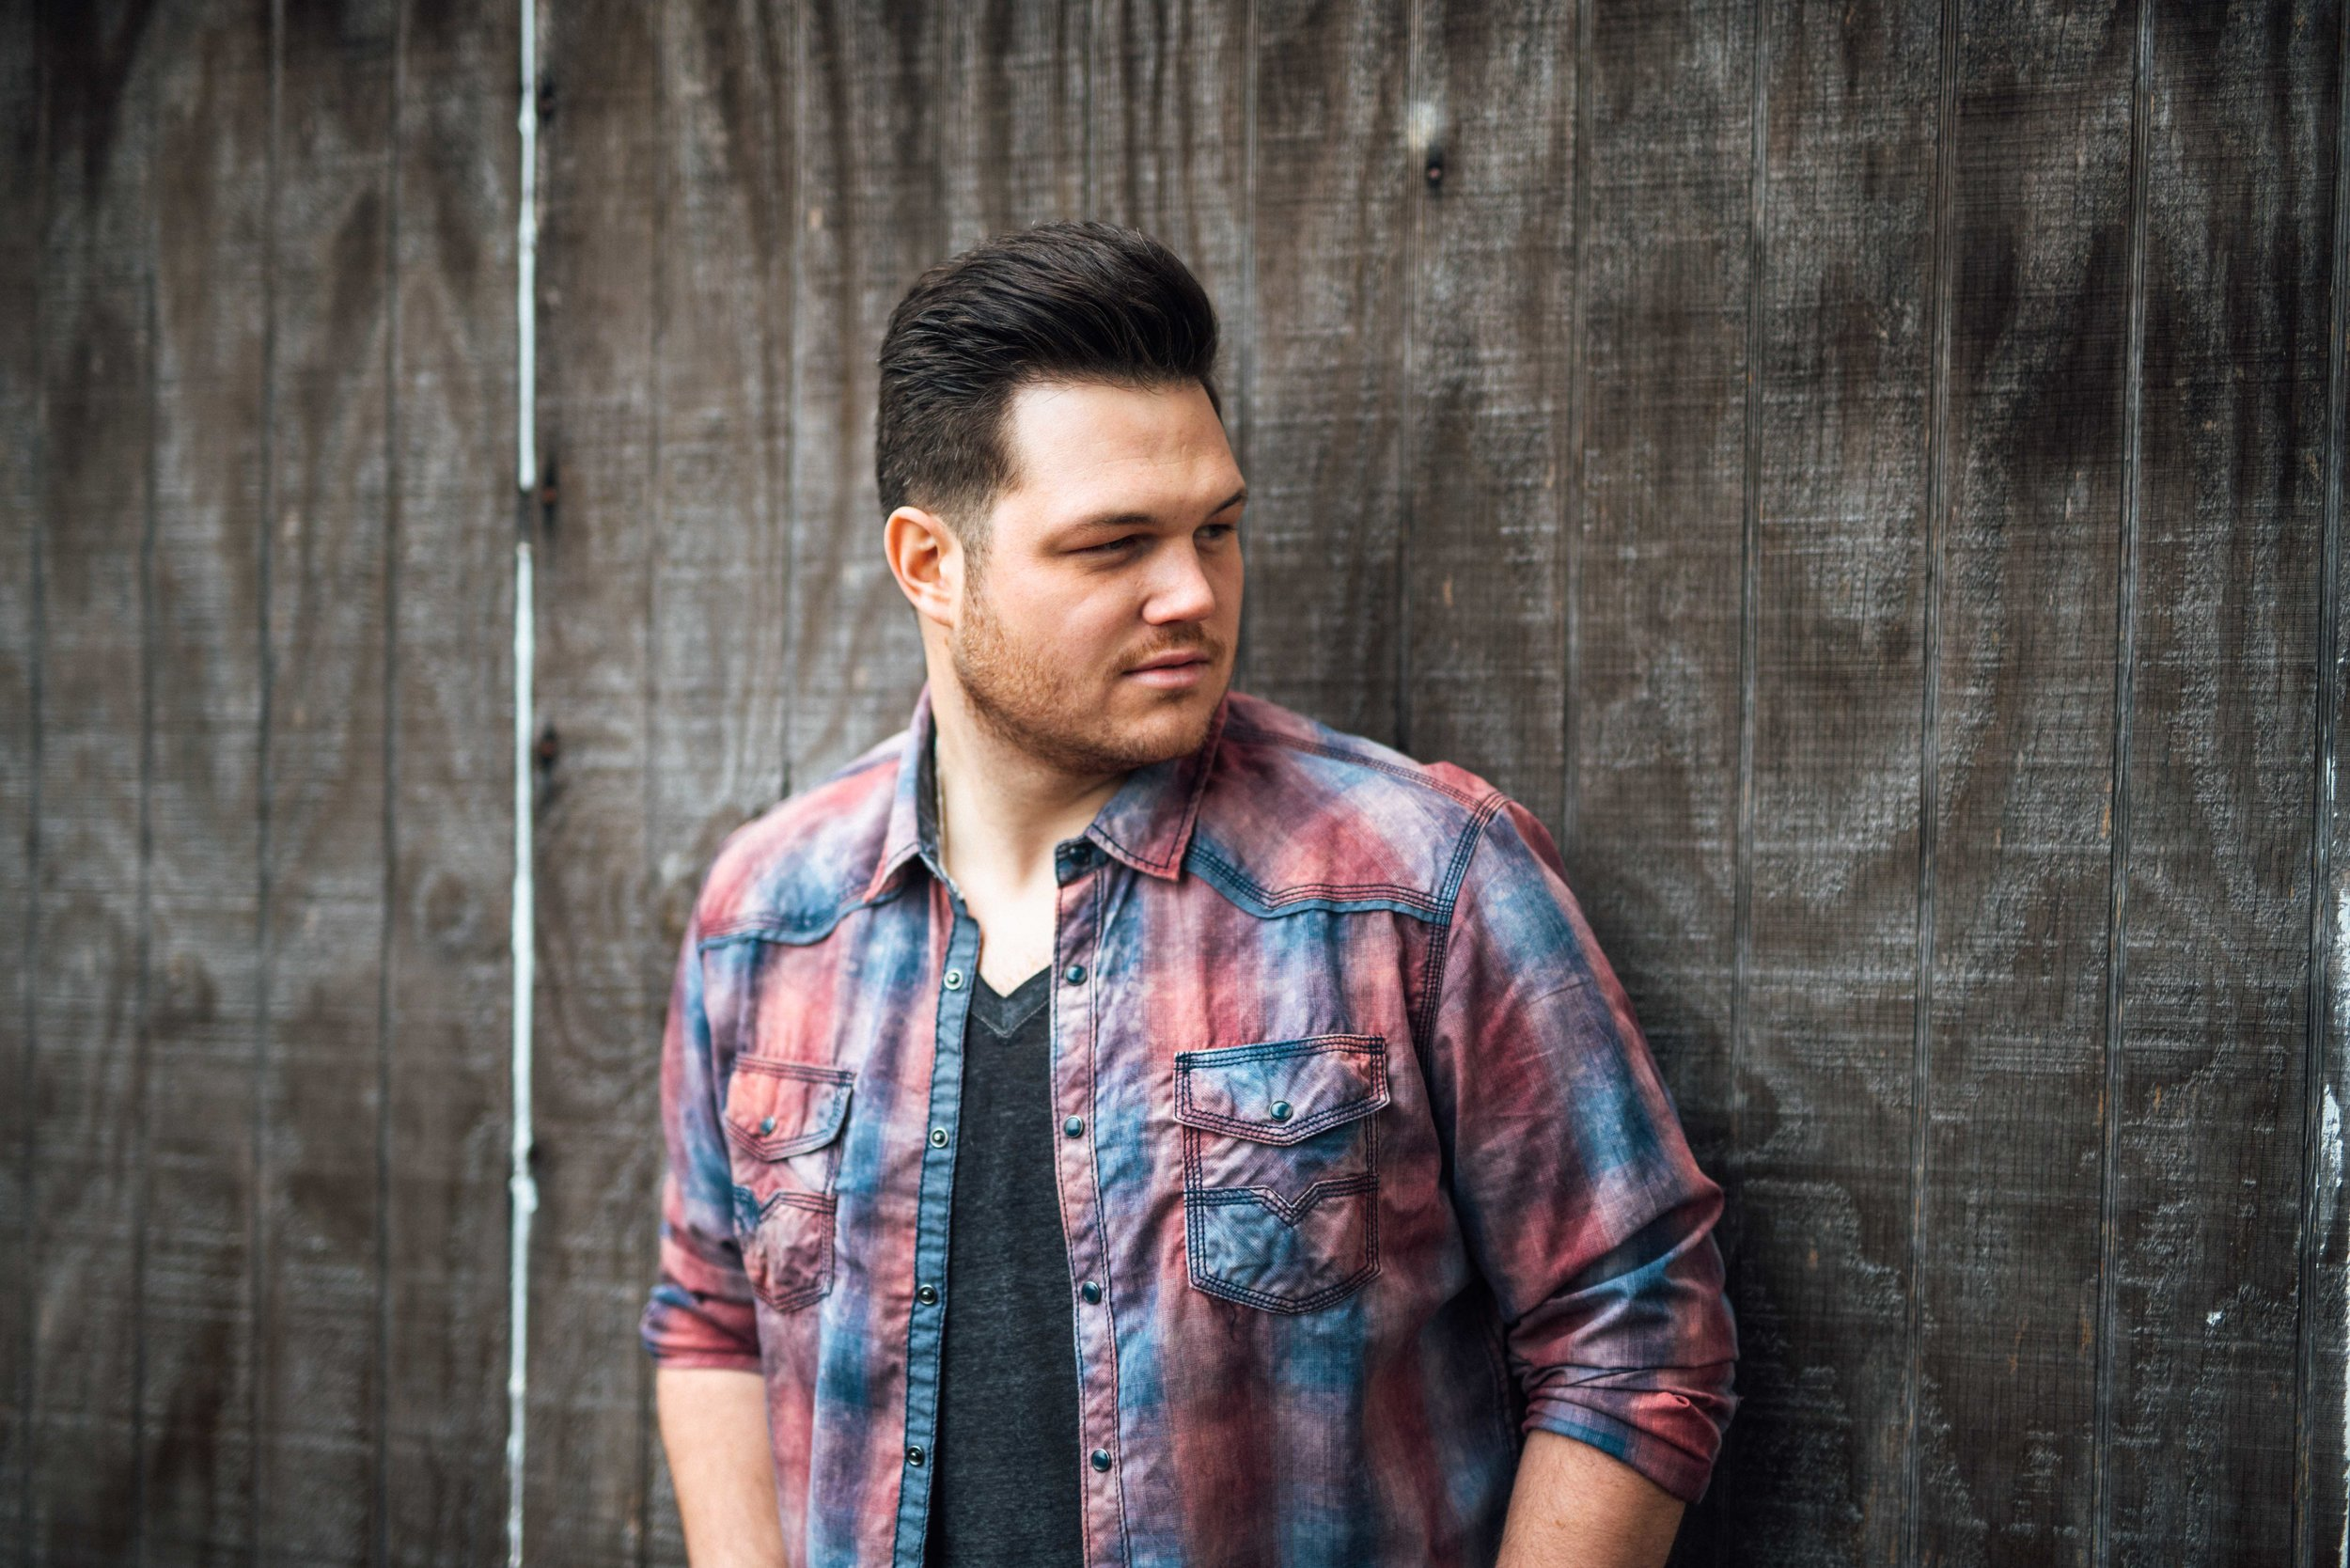 """Born and raised in central Oregon, the first years of AJ's life were spent touring the Pacific Northwest with his family sharing gospel music. He began recording at age 3, had his own band at age 10, and has been moving forward with his music ever since.  While still living in Oregon, songwriter, Tim Johnson (""""I Let Her Lie"""" by Daryle Singletary, """"God Only Cries"""" by Diamond Rio, """"Do You Believe Me Now"""" by Jimmy Wayne…) took AJ under his wing (age 21), and said """"I'd put you in the top 2% vocally in Nashville and if your serious about your music, you need to move here"""". A few months later AJ packed his truck and never looked back. AJ was quickly given the stage at the legendary Bluebird Cafe by heavyweight singer/songwriter, Bernie Nelson (cuts by Conway Twitty, Chrystal Gayle, Trace Adkins, Kenny Chesney, Wynonna, Pam Tillis, Mark Wills, Oak Ridge Boys, Collin Raye… to name a few). Bernie has been known to recognize and champion, raw, undiscovered talent (Garth Brooks, Kenny Chesney… ). Bernie says """"There will always be a place in country music for new artists to catch the wave of others and ride it for a short while and gain illusional success. AJ Kross will not be one of those entertainers because a singer sings songs, while an artist interprets life through words and music. AJ Kross is an artist.""""  AJ's 5 song debut EP, """"People Gonna Talk"""", has people doing just that. Whether fans are commenting on his tone, delivery or the live sound, we believe your going to love this """"New, Old Country Music"""" produced by two of Nashville's most thorough and talented producers, The Time Keepers. Steffon, of The Time Keepers, says """"AJ Kross is one of the best natural singers I've come across in my 15 years in Nashville. He makes melody sound effortless. But what separates AJ the most is his self-awareness artistically. He knows who he is, what he has to say, and how he wants to say it."""" Another recent quote by producer/song writer Jeff Anderson, """"AJ has one of the best voices to e"""